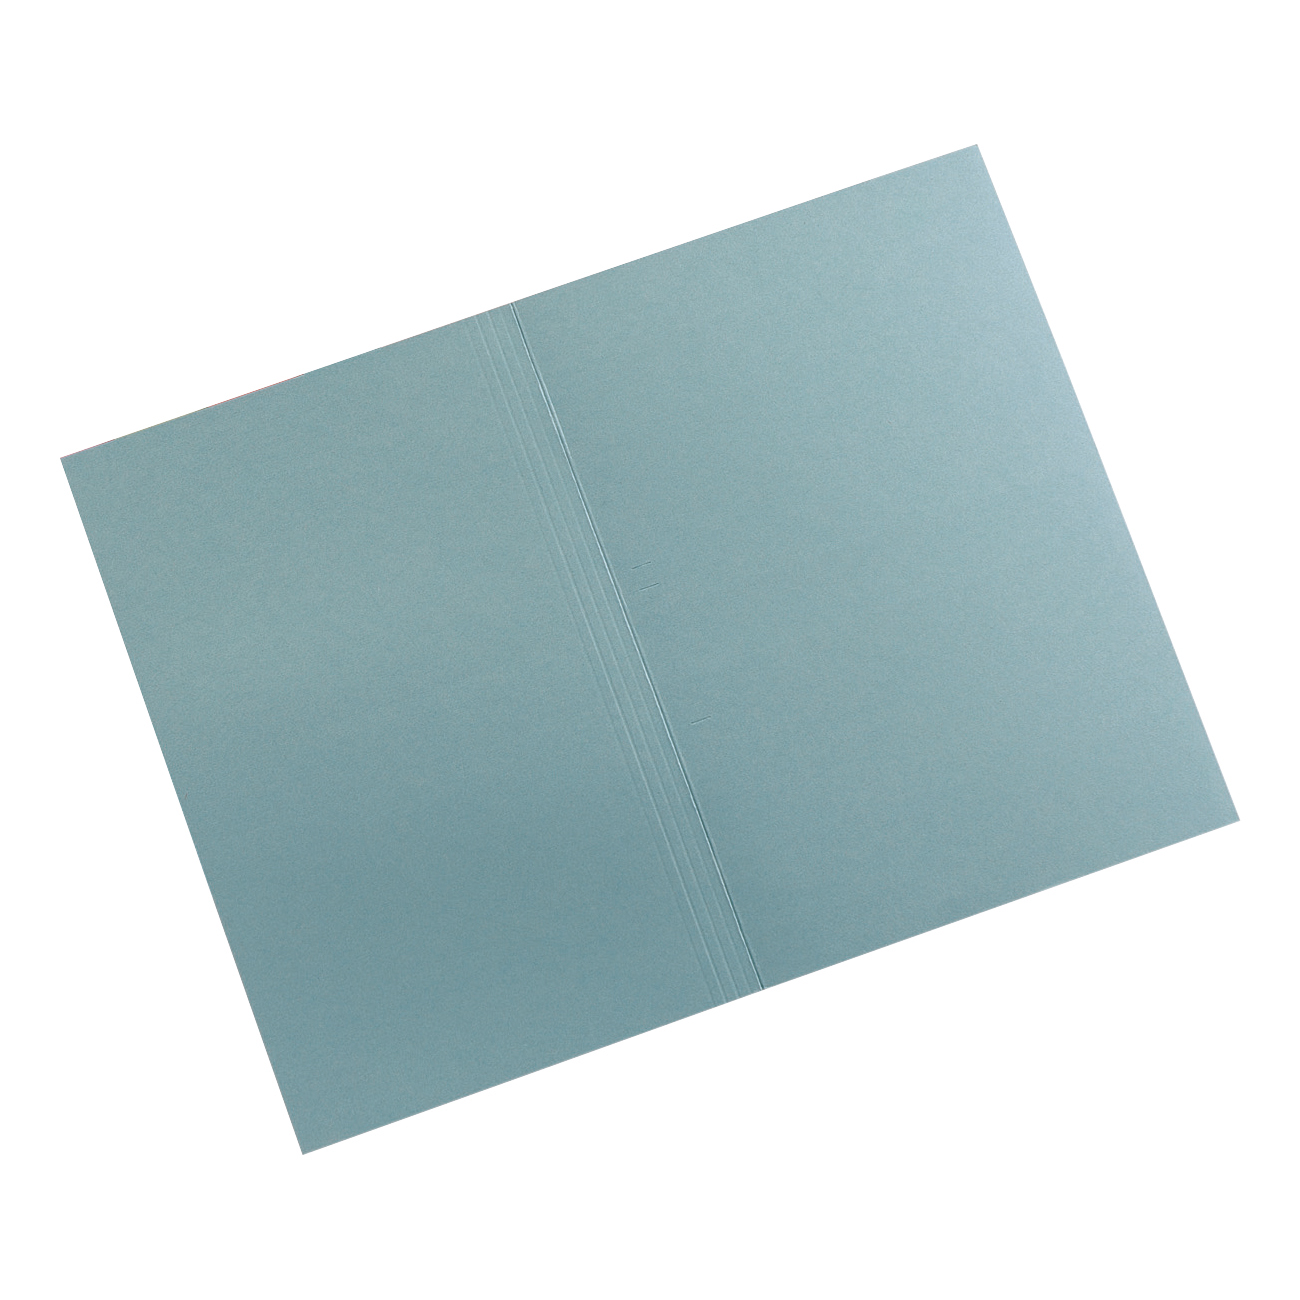 5 Star Elite Square Cut Folders 315gsm Heavyweight Manilla Foolscap Blue Pack 100